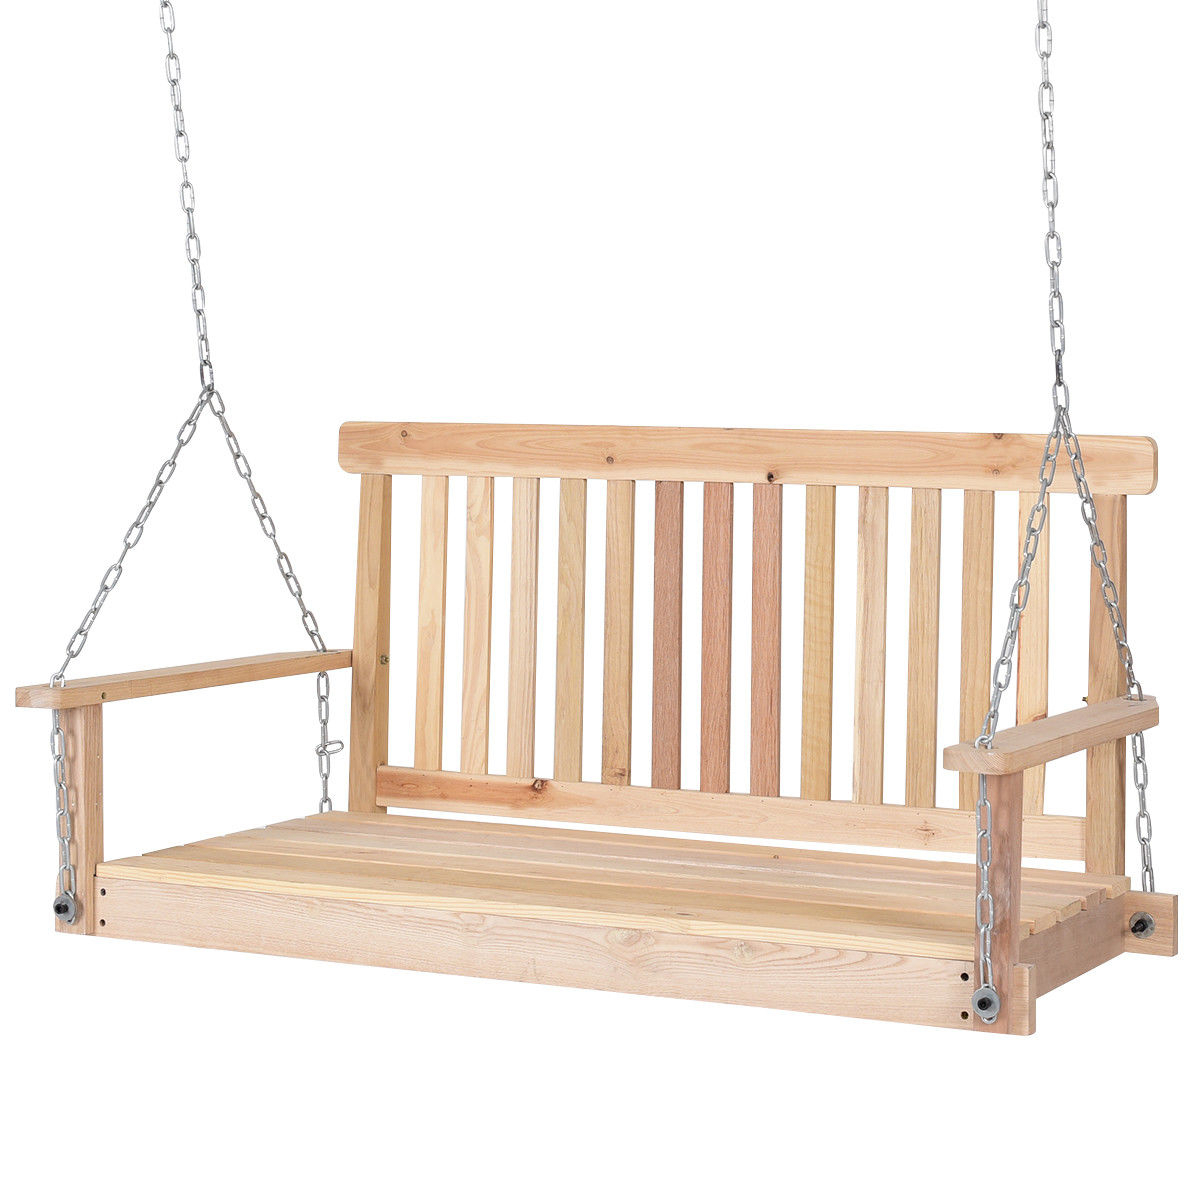 4' Wood Garden Hanging Seat Chains Porch Swing Inside 3 Person Natural Cedar Wood Outdoor Swings (View 22 of 25)